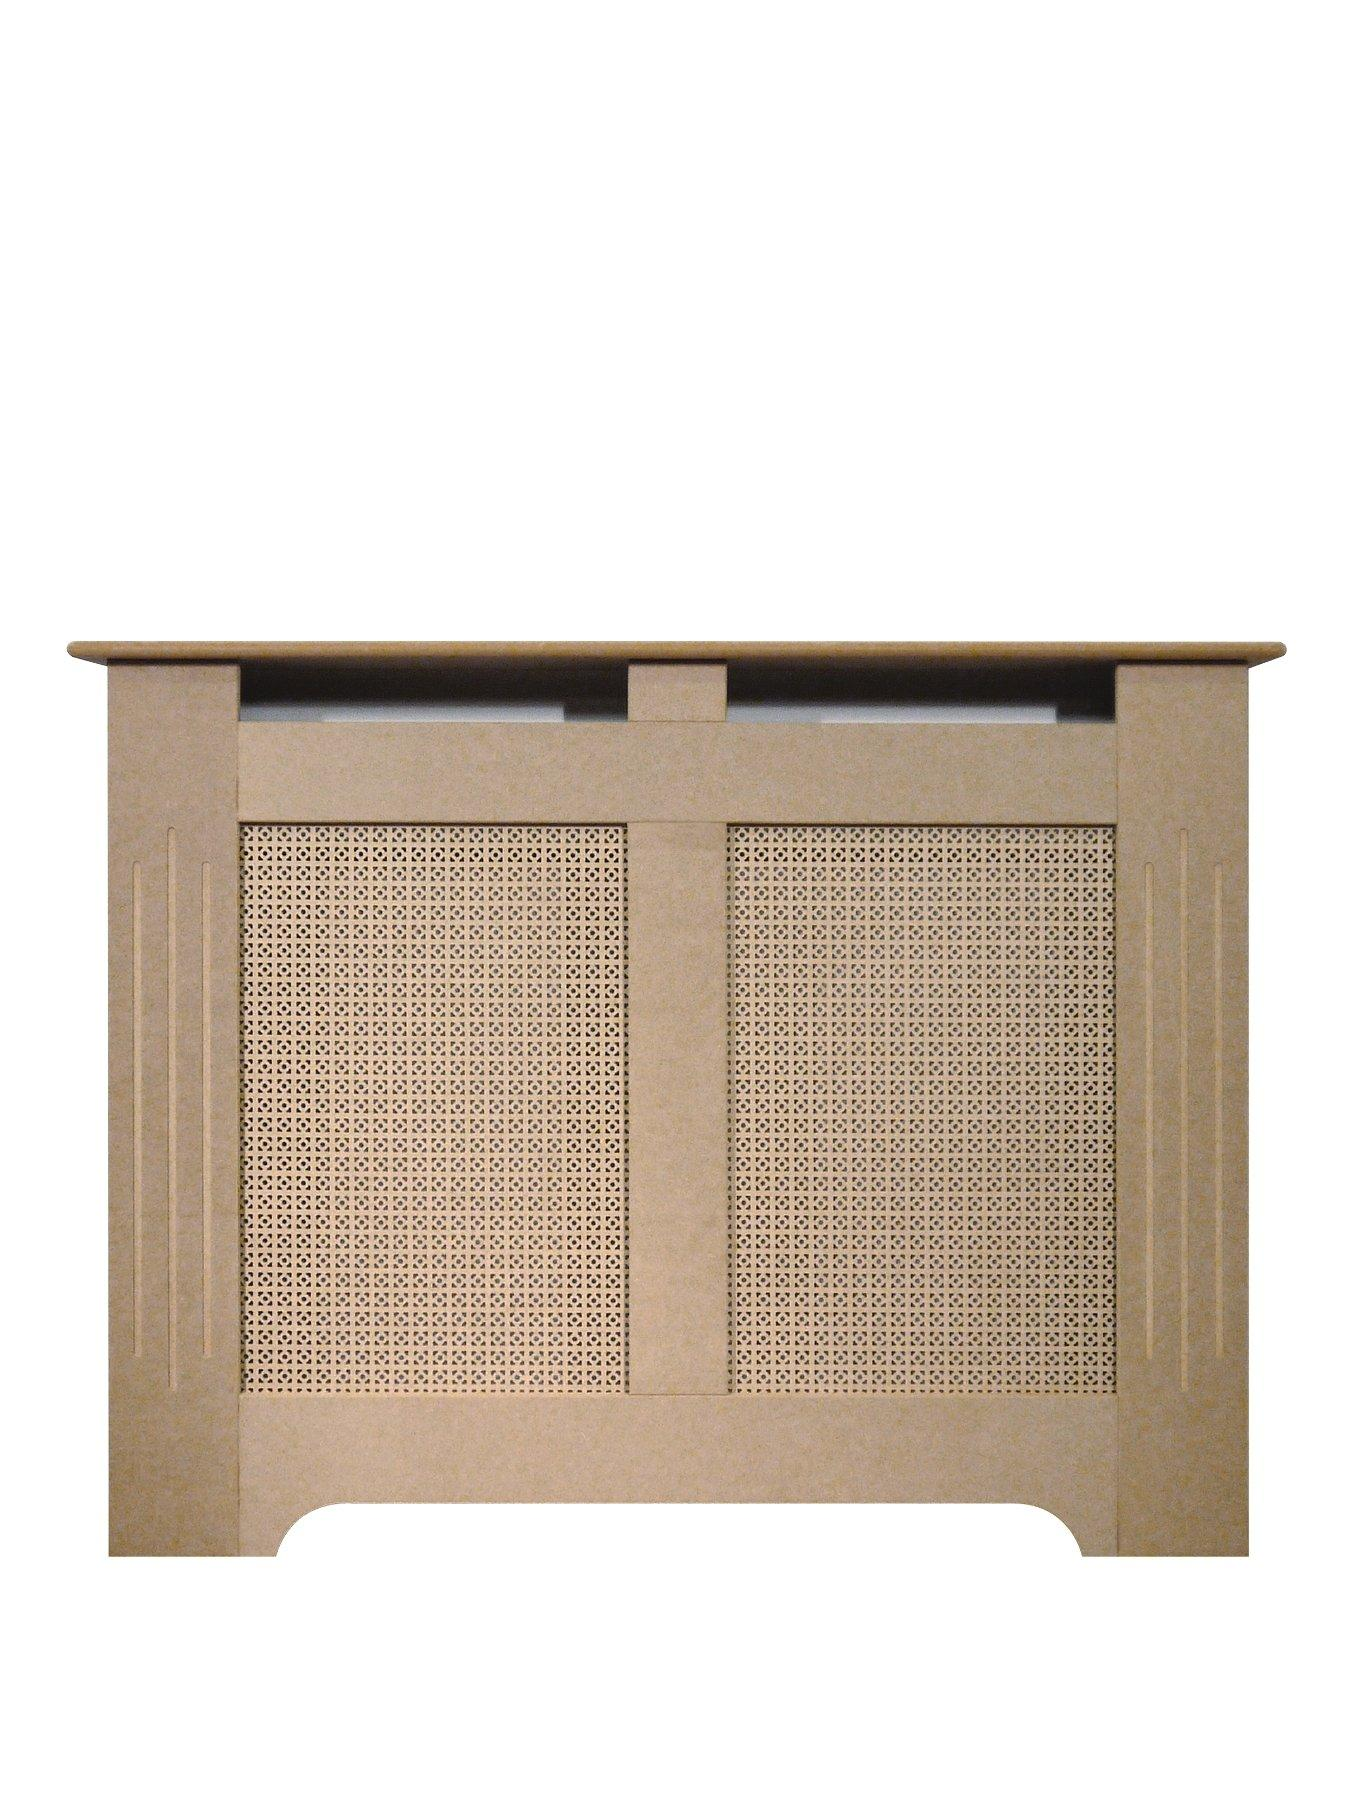 Compare prices for Adam Fire Surrounds 120Cm Unfinished Mdf Radiator Cover